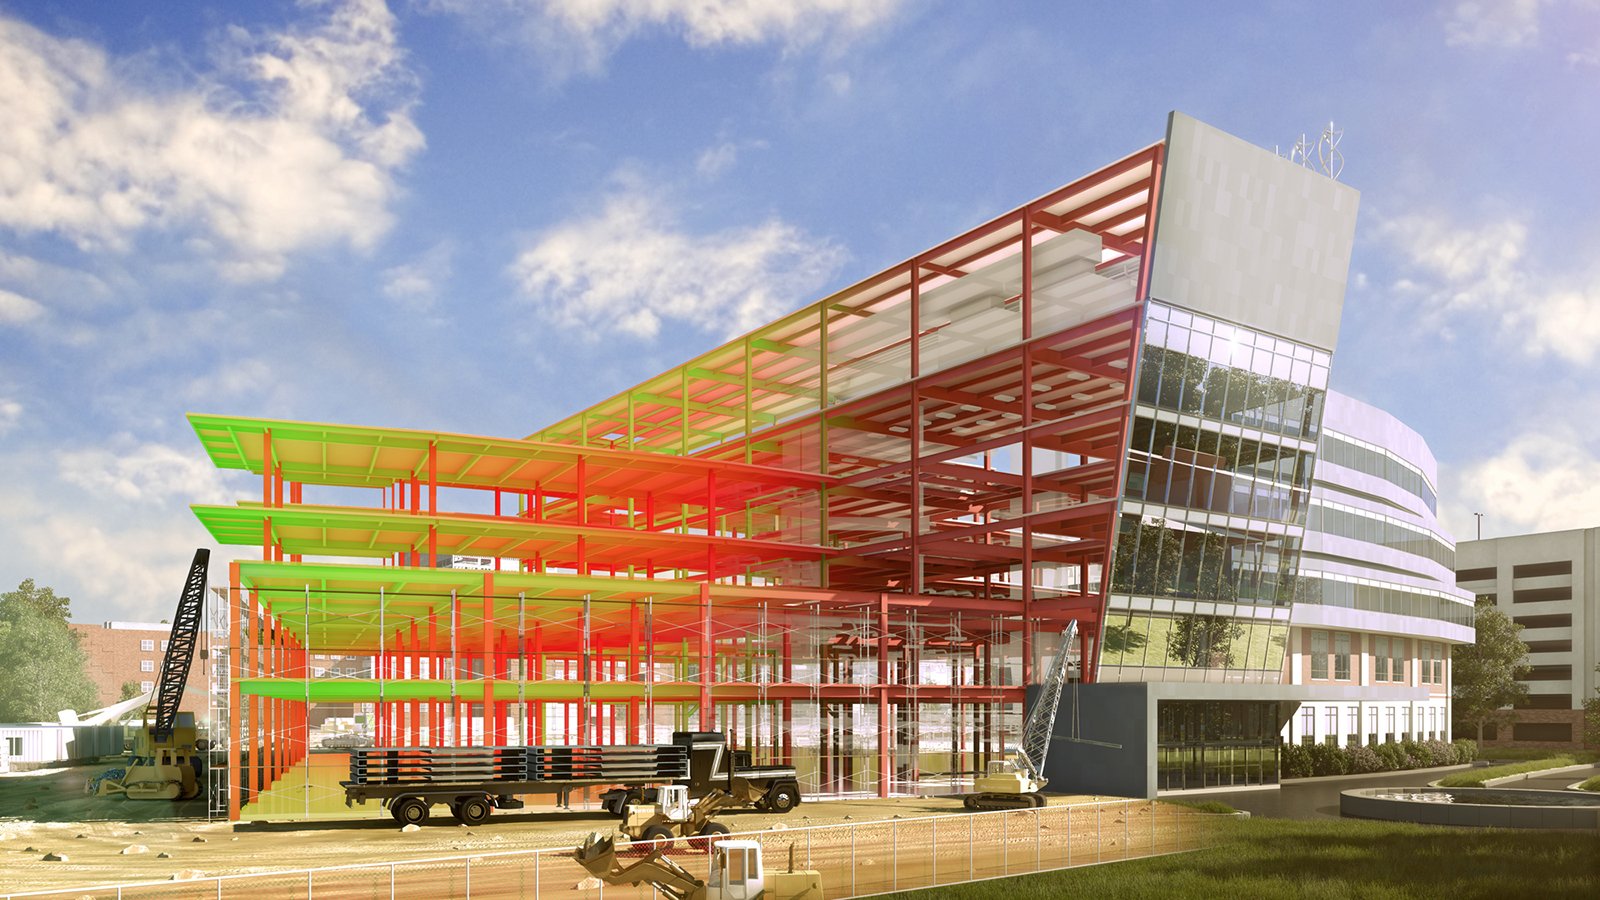 bim_for_buildings_structural_1600x900-473897831